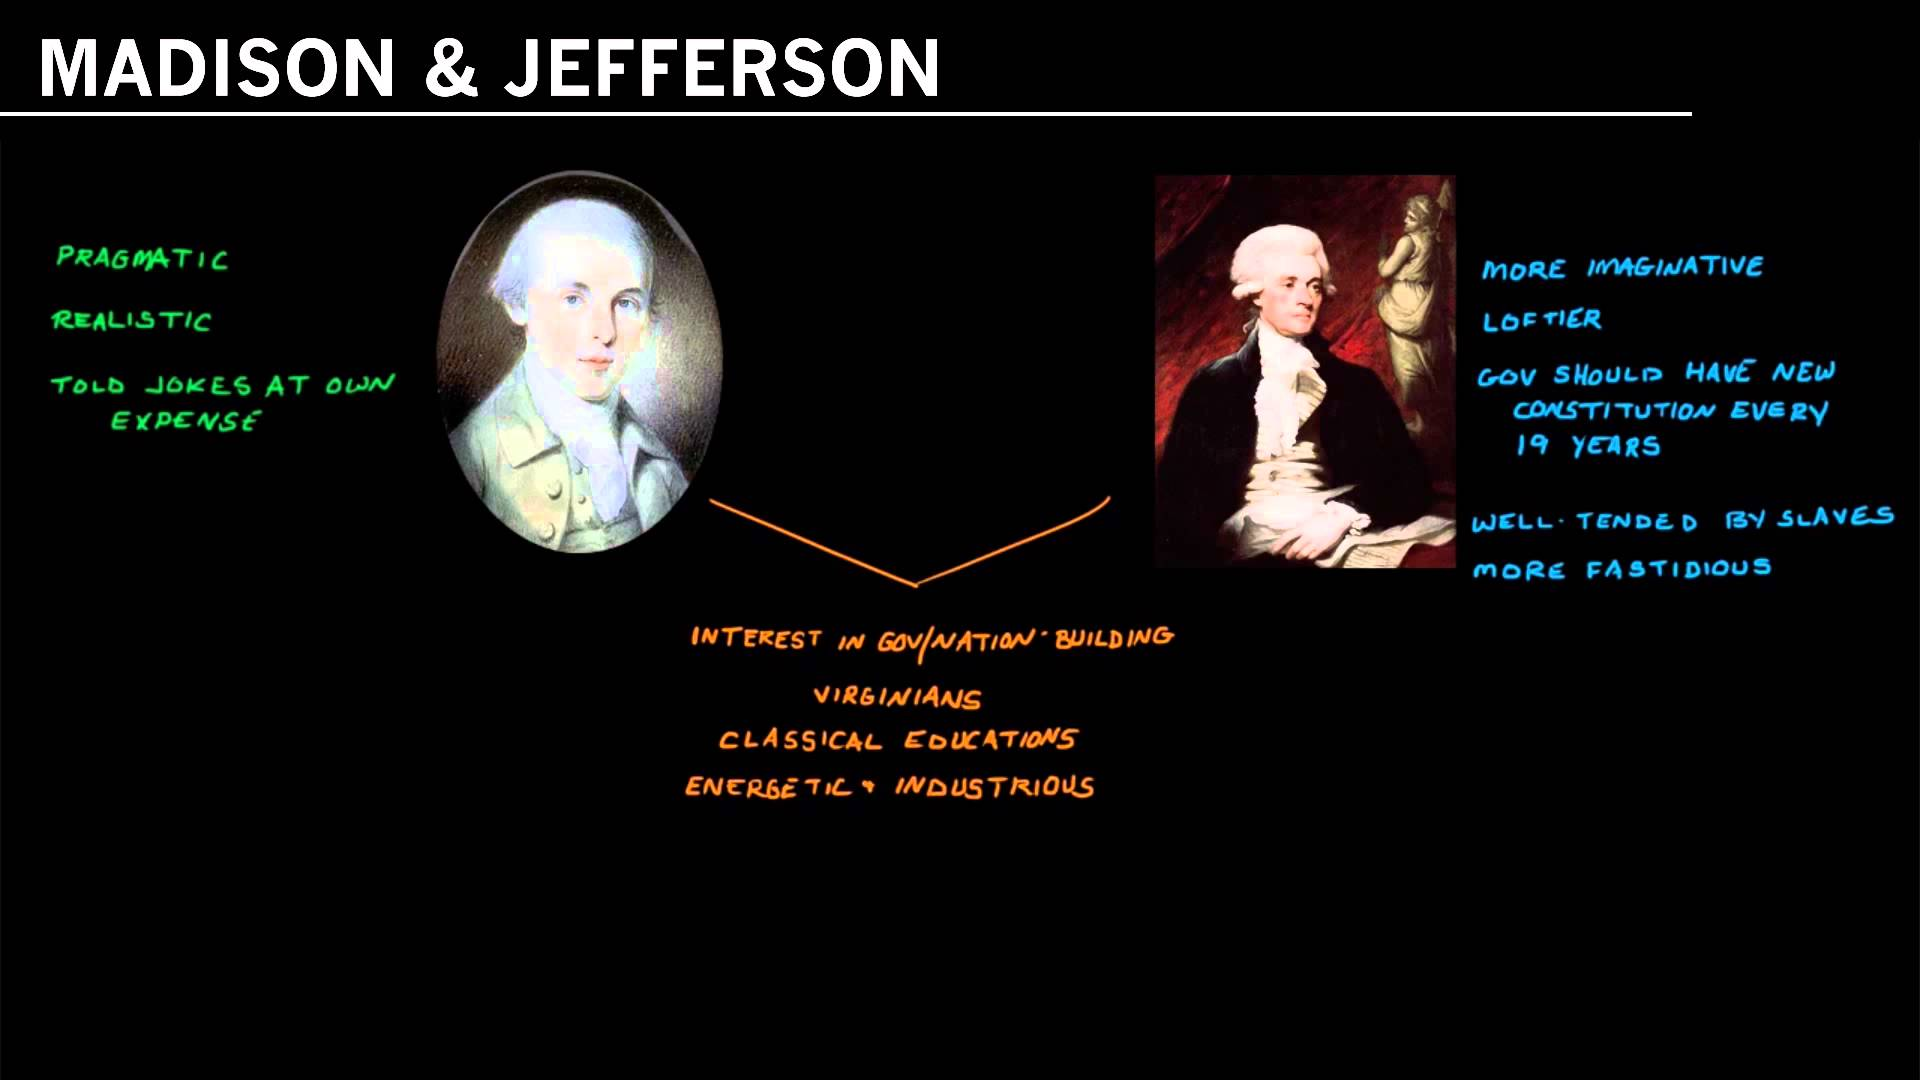 Differences Between James Madison and Thomas Jefferson